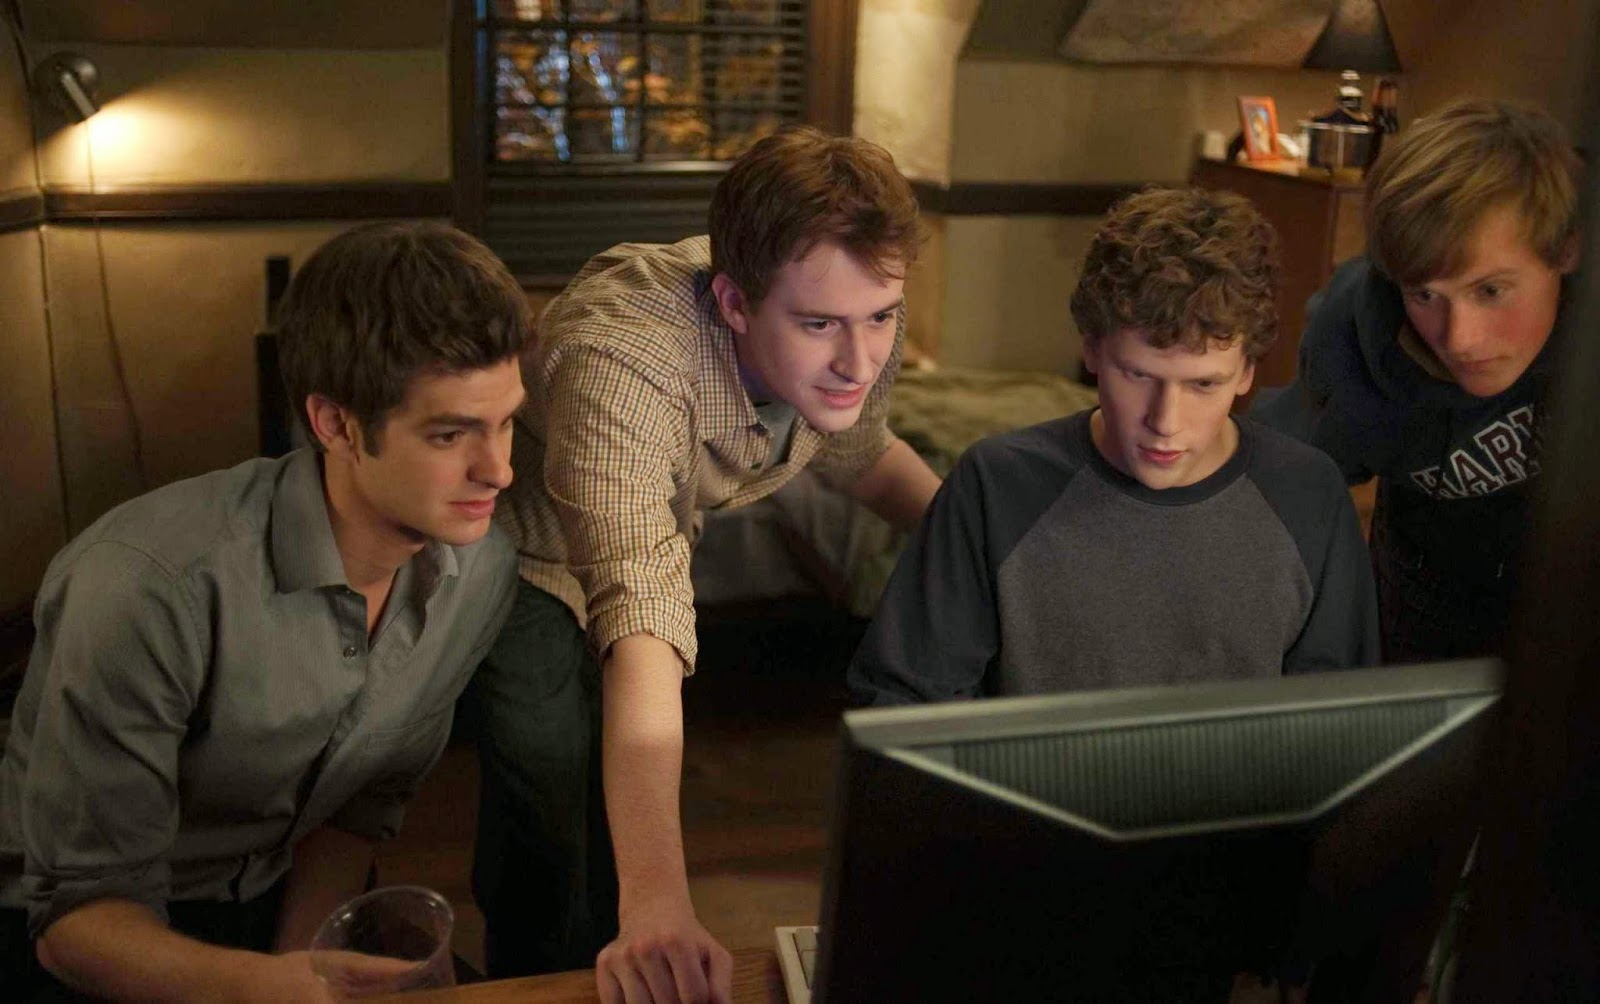 THE SOCIAL NETWORK: ENTITLEMENT